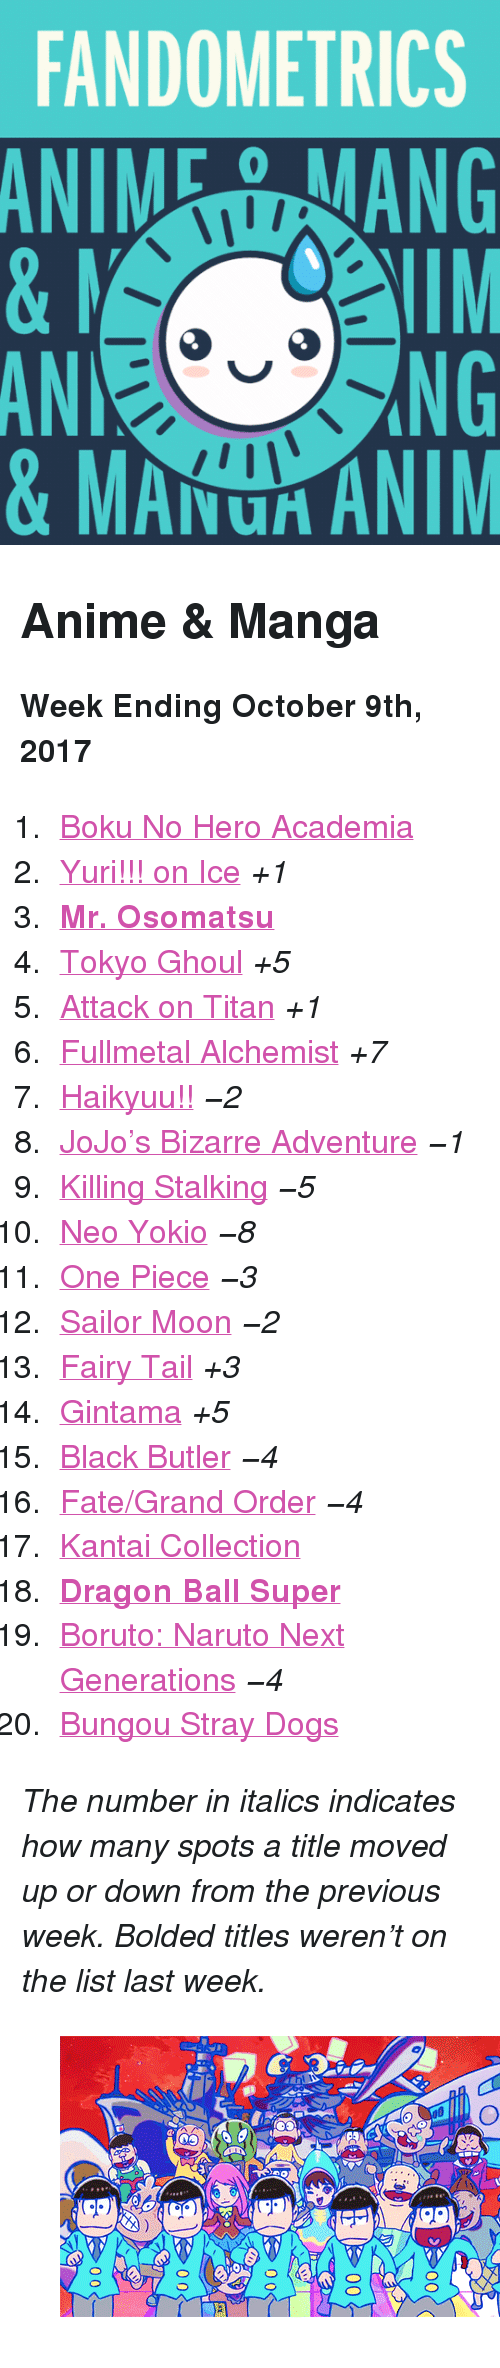 "Tokyo Ghoul: FANDOMETRICS  ANIEANG  AN  0  NG  & MAU ANIM <h2>Anime &amp; Manga</h2><p><b>Week Ending October 9th, 2017</b></p><ol><li><a href=""http://tumblr.co/61328fWrg"">Boku No Hero Academia</a></li><li><a href=""http://tumblr.co/61348fWri"">Yuri!!! on Ice</a> <i>+1</i></li><li><a href=""http://tumblr.co/61358fWrc""><b>Mr. Osomatsu</b></a></li><li><a href=""http://tumblr.co/61368fWrY"">Tokyo Ghoul</a> <i>+5</i></li><li><a href=""http://tumblr.co/61378fWrl"">Attack on Titan</a> <i>+1</i></li><li><a href=""http://tumblr.co/61388fWrm"">Fullmetal Alchemist</a> <i>+7</i></li><li><a href=""http://tumblr.co/61398fWrW!!"">Haikyuu!!</a> <i>−2</i></li><li><a href=""http://tumblr.co/61308fWro"">JoJo&rsquo;s Bizarre Adventure</a> <i>−1</i></li><li><a href=""http://tumblr.co/61318fWrU"">Killing Stalking</a> <i>−5</i></li><li><a href=""http://tumblr.co/61328fWrq"">Neo Yokio</a> <i>−8</i></li><li><a href=""http://tumblr.co/61338fWrS"">One Piece</a> <i>−3</i></li><li><a href=""http://tumblr.co/61358fWrt"">Sailor Moon</a> <i>−2</i></li><li><a href=""http://tumblr.co/61368fWrQ"">Fairy Tail</a> <i>+3</i></li><li><a href=""http://tumblr.co/61378fWrv"">Gintama</a> <i>+5</i></li><li><a href=""http://tumblr.co/61388fWra"">Black Butler</a> <i>−4</i></li><li><a href=""http://tumblr.co/61398fWrx"">Fate/Grand Order</a> <i>−4</i></li><li><a href=""http://tumblr.co/61308fWrI"">Kantai Collection</a></li><li><a href=""http://tumblr.co/61318fWrL""><b>Dragon Ball Super</b></a></li><li><a href=""http://tumblr.co/61328fWr0"">Boruto: Naruto Next Generations</a> <i>−4</i></li><li><a href=""http://tumblr.co/61338fWrF"">Bungou Stray Dogs</a></li></ol><p><i>The number in italics indicates how many spots a title moved up or down from the previous week. Bolded titles weren't on the list last week.</i></p><figure class=""tmblr-full pinned-target"" data-orig-height=""150"" data-orig-width=""268"" data-tumblr-attribution=""benjandan:PqyFLIPiembkTWk8yn3wtQ:ZNOo2t1-Vs8ic""><img src=""https://78.media.tumblr.com/2630dc2086807bd253569d8accf4b46d/tumblr_o0i259q6j91s5wiico1_500.gif"" data-orig-height=""150"" data-orig-width=""268""/></figure>"